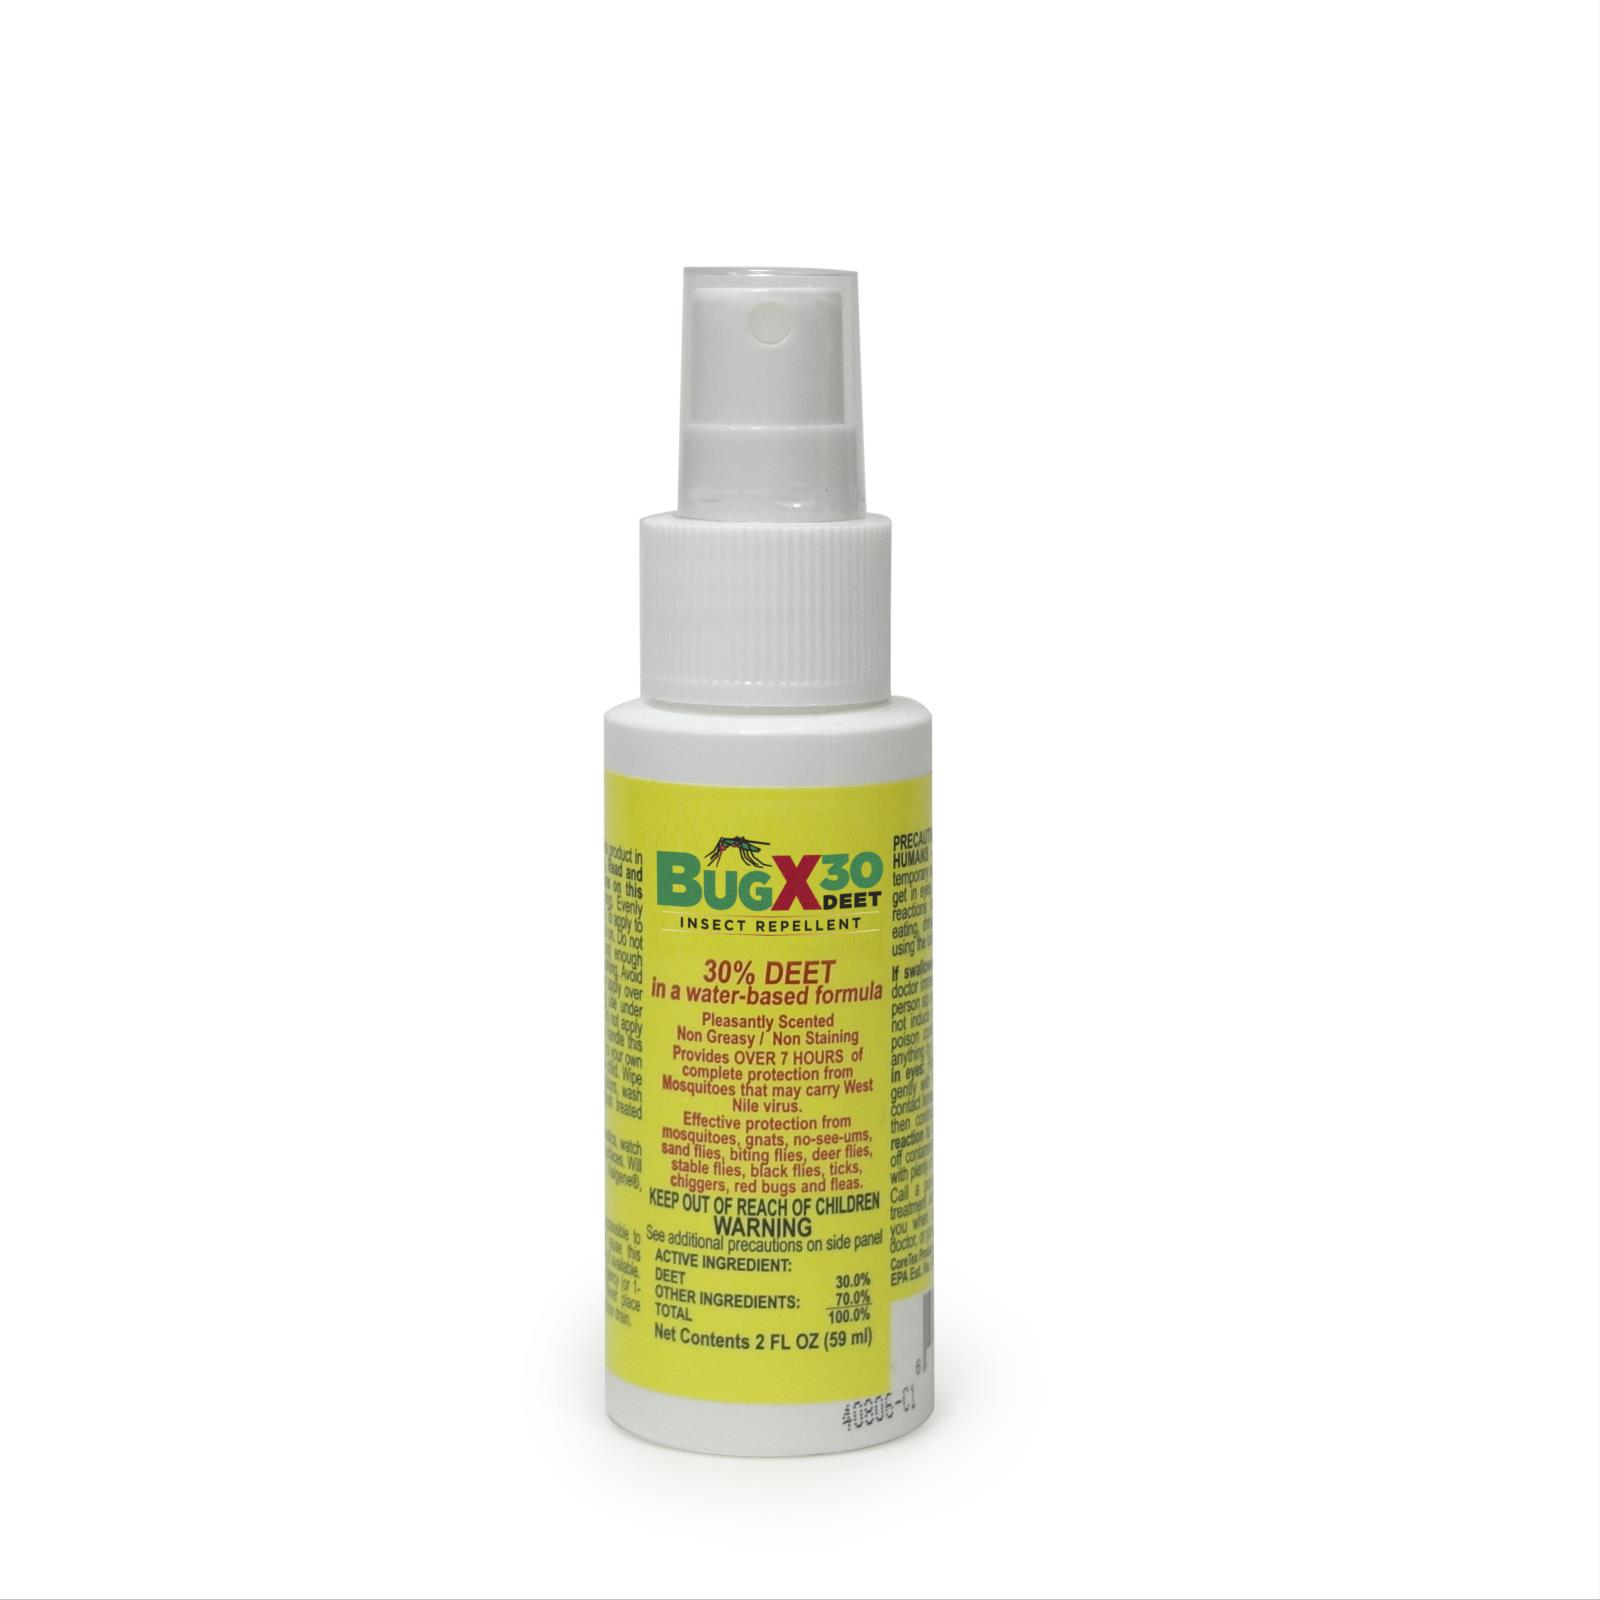 BugX® 30 DEET Insect Repellent